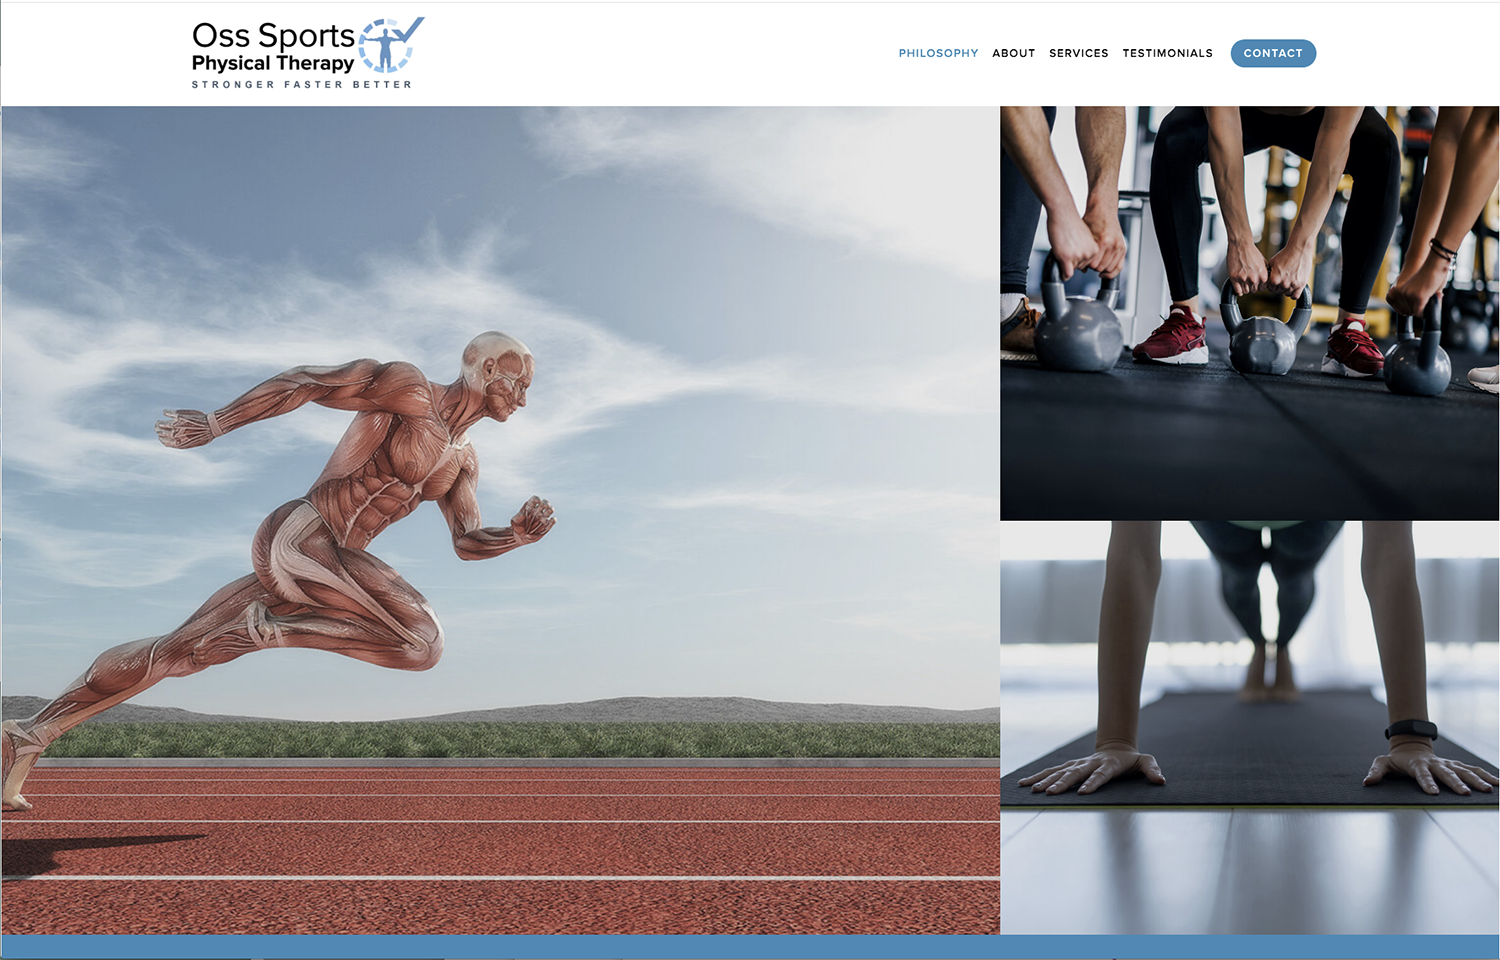 website for a new start up Physical Therapy practice, Oss Sports PT, opening Aug 1st.